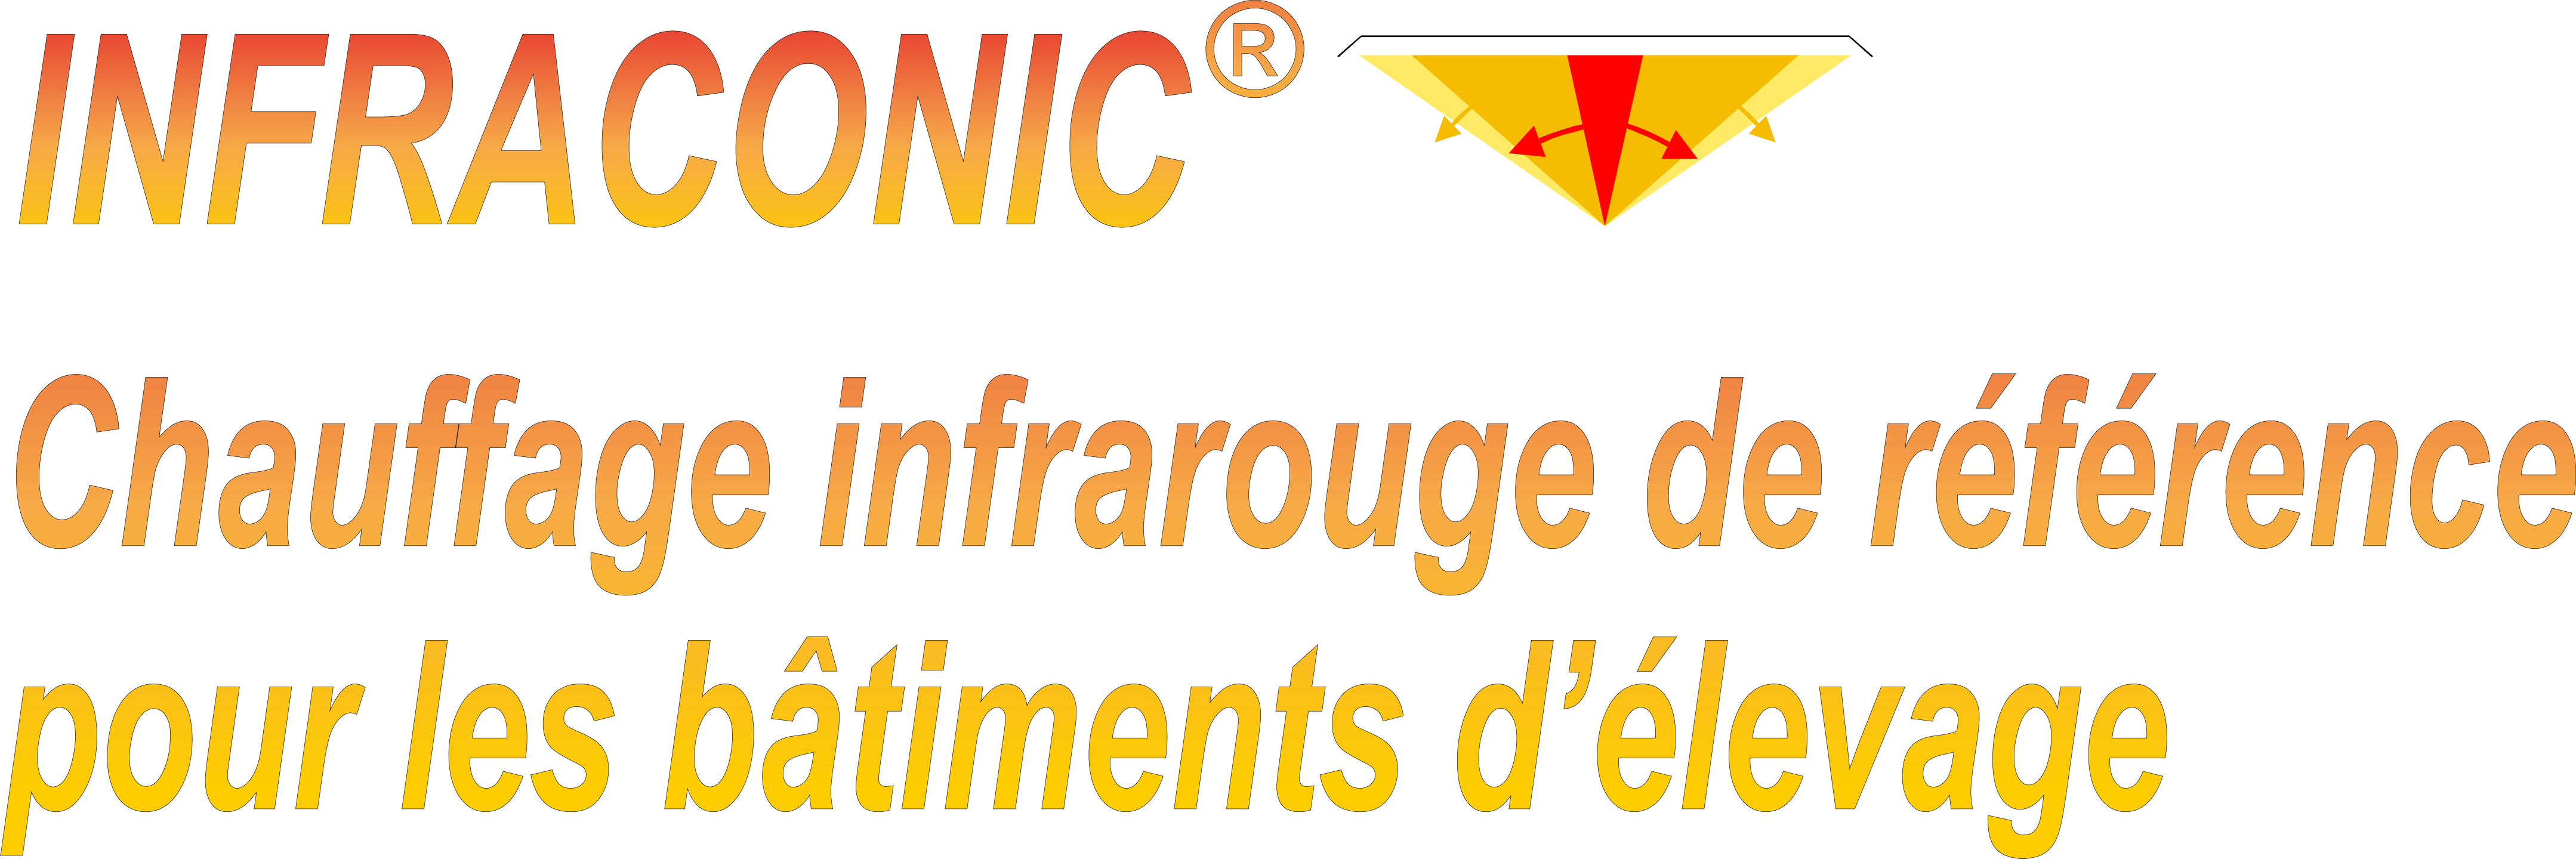 chauffage infrarouge - Cerem infraconic ®